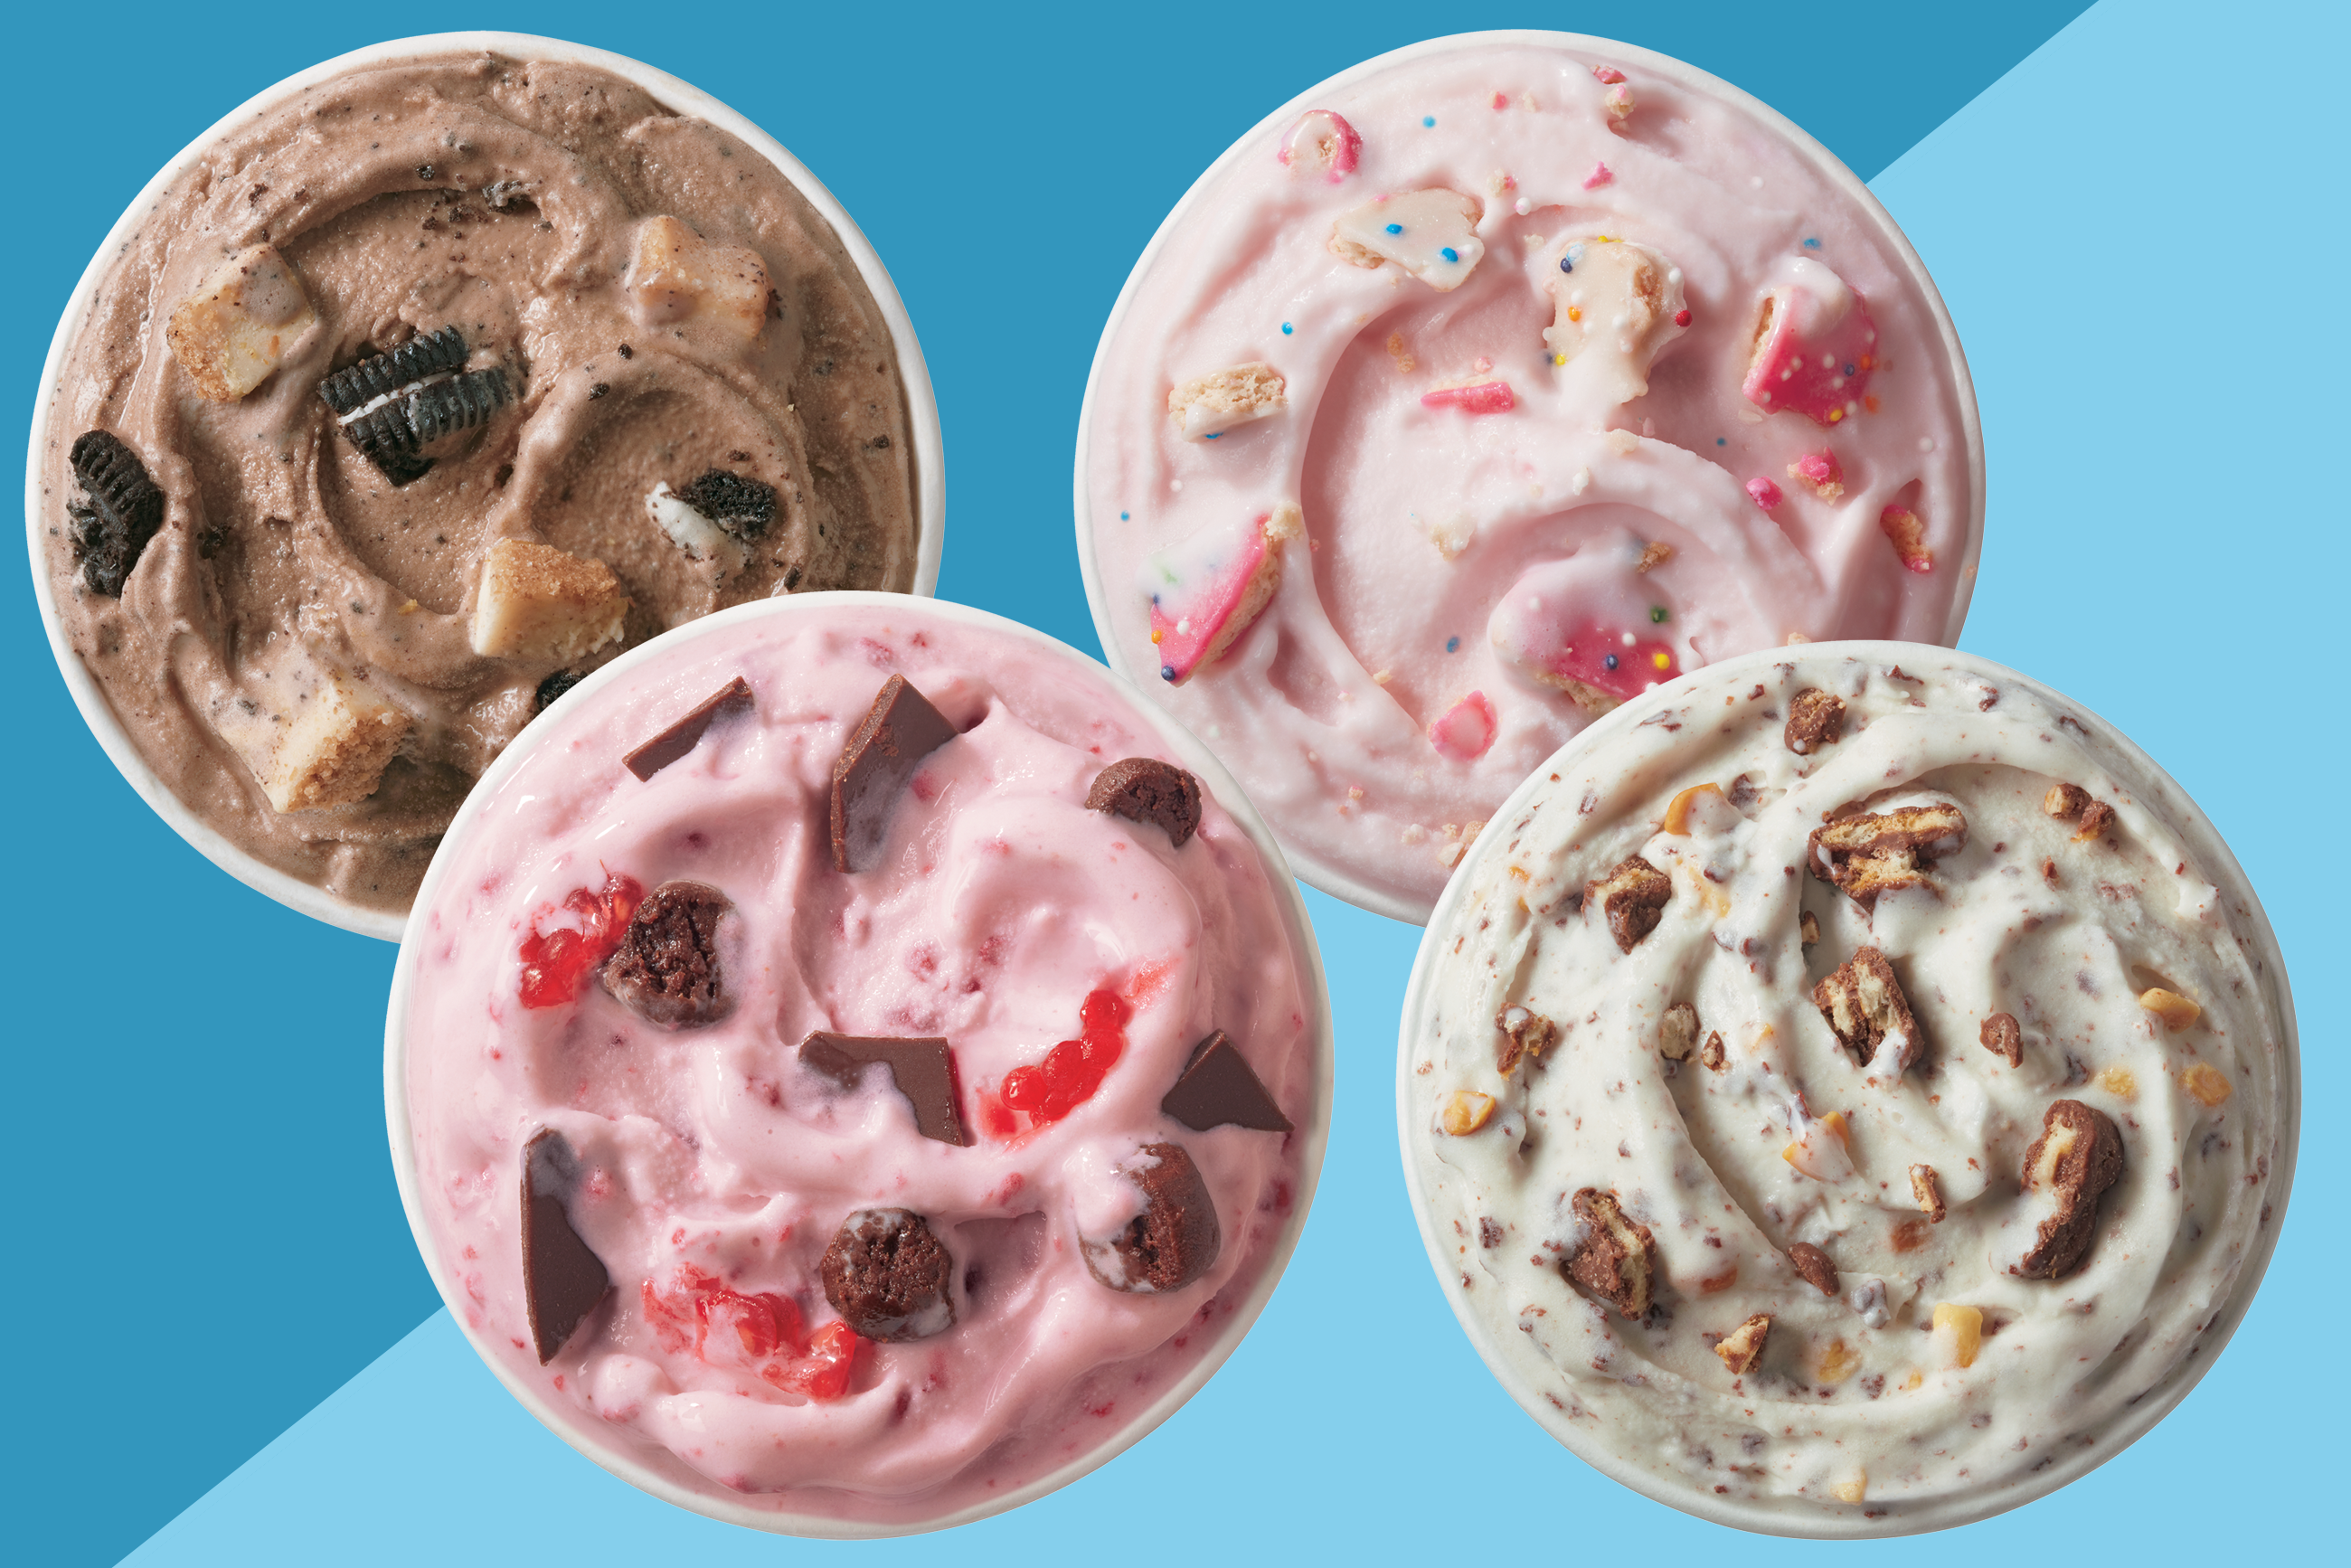 Dairy Queen Adds More New Flavors to Their List of Summer Blizzards